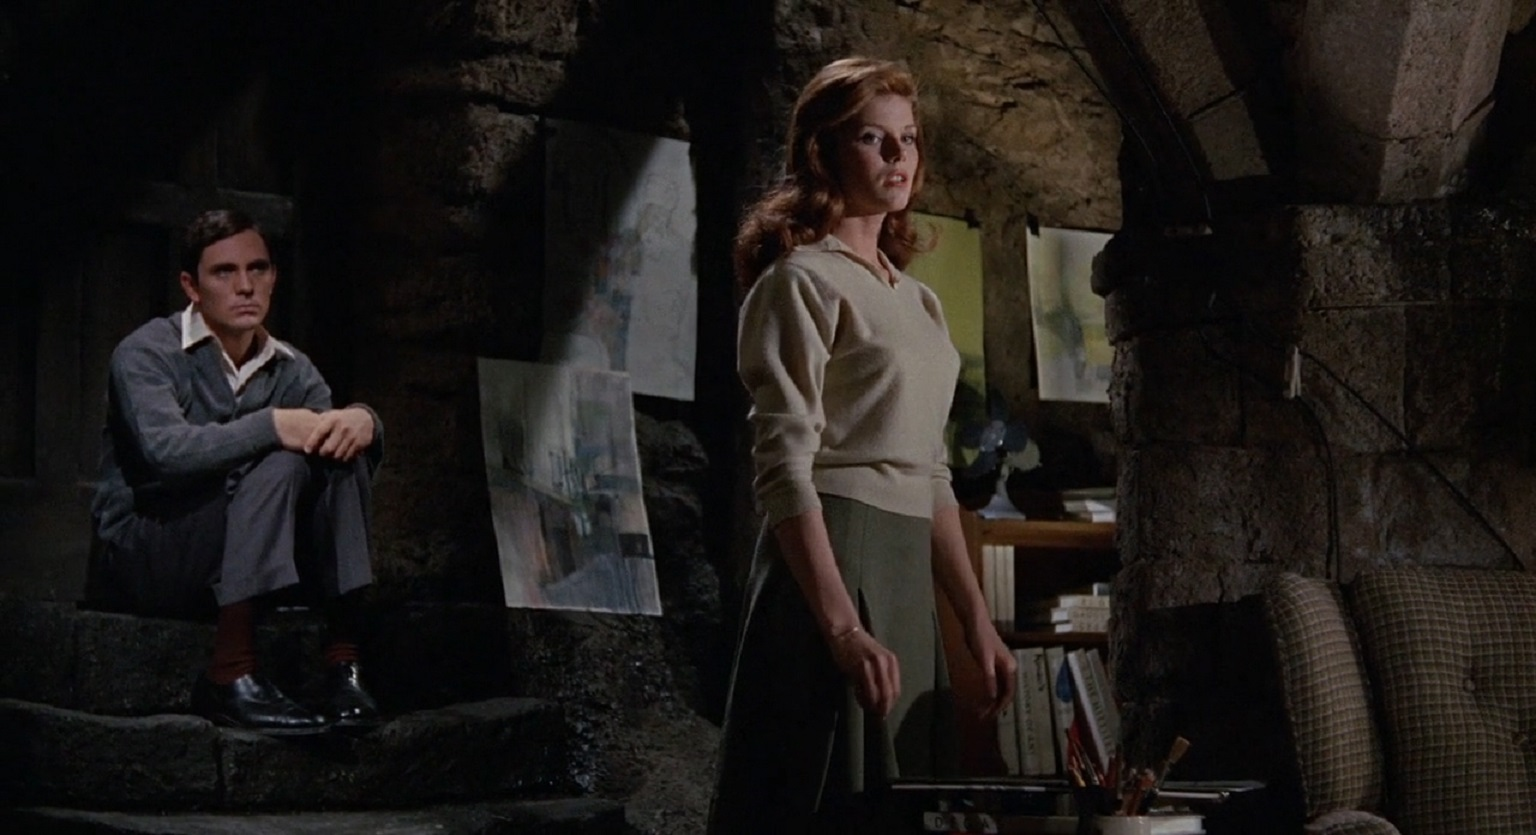 Terence Stamp with his prisoner Samantha Eggar in The Collector (1965)